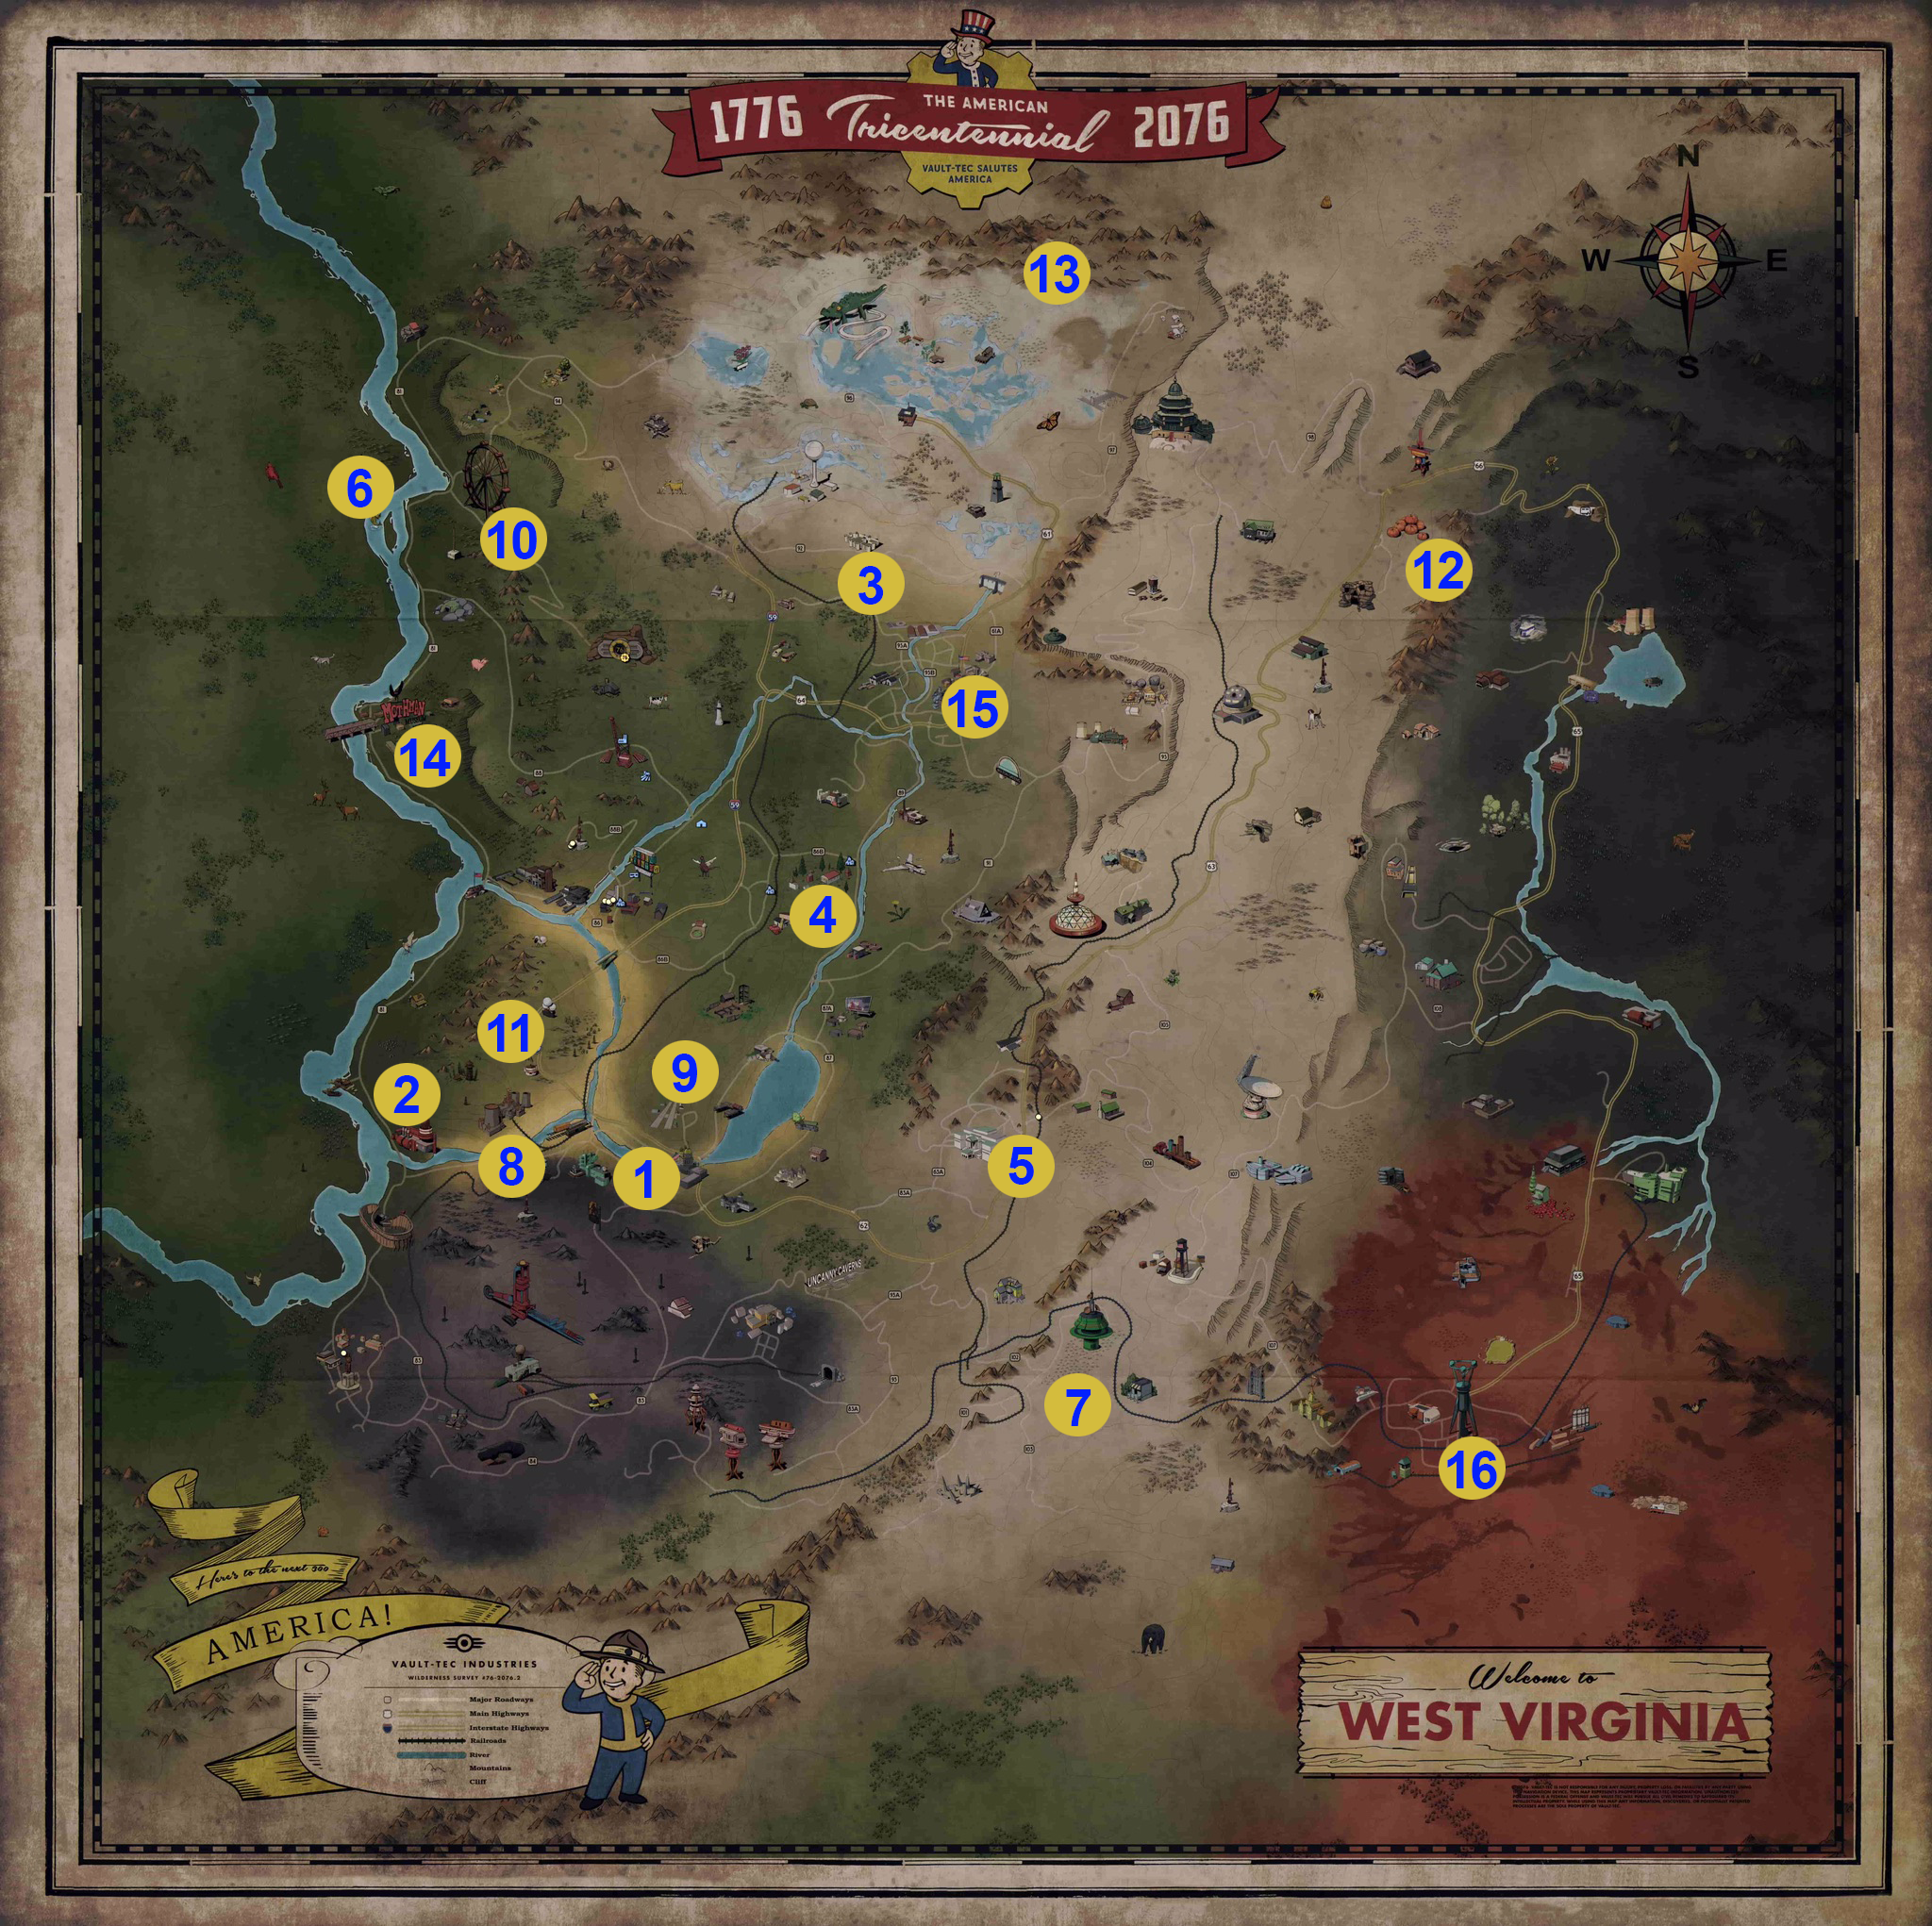 Fallout 76 locations | PC Gamer